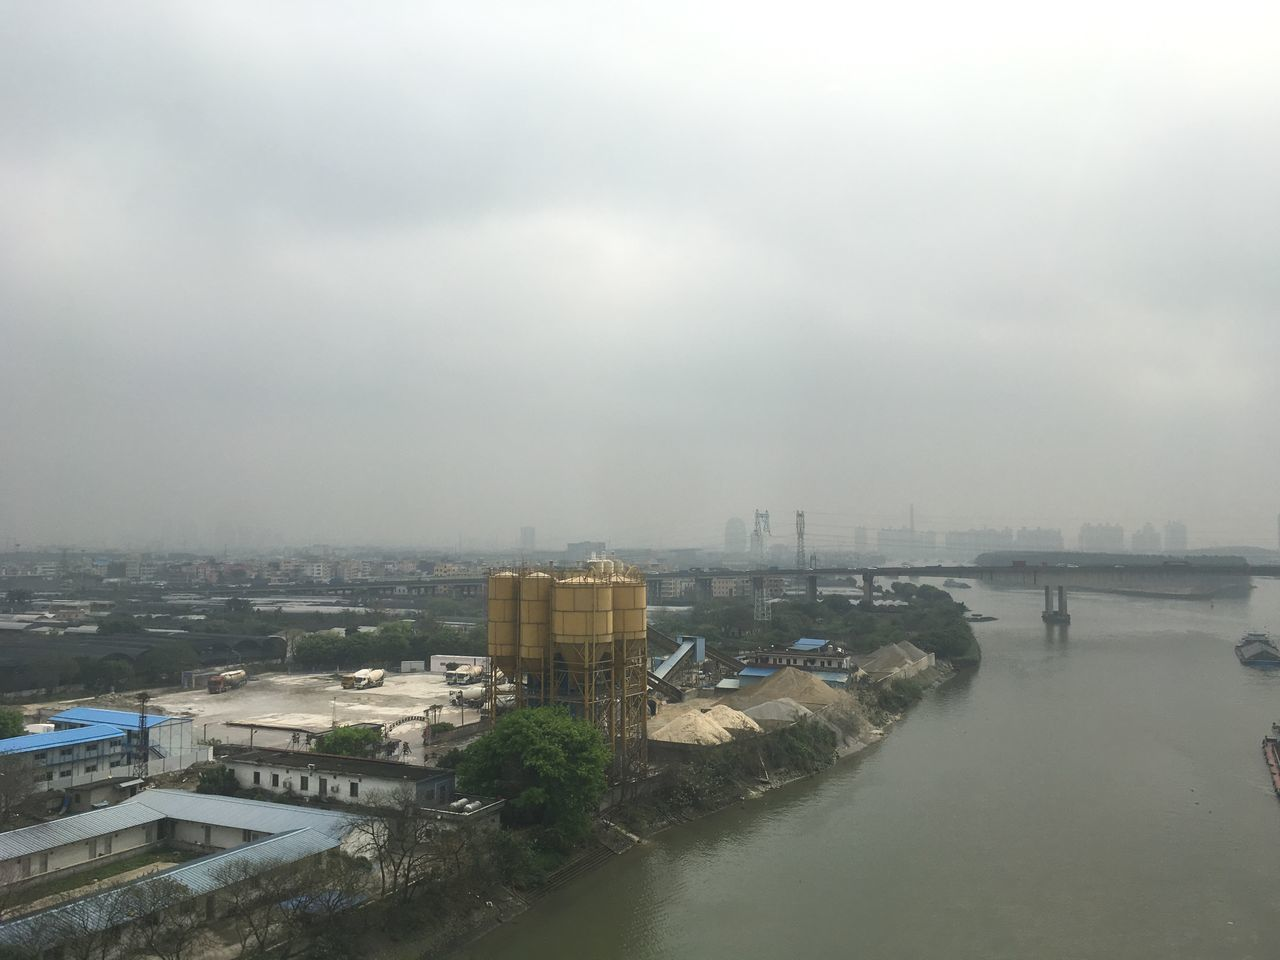 Aerial View Architecture Bridge - Man Made Structure Building Exterior Built Structure China City Cityscape Day Nature No People Outdoors River Sky Transportation Travel Destinations Water